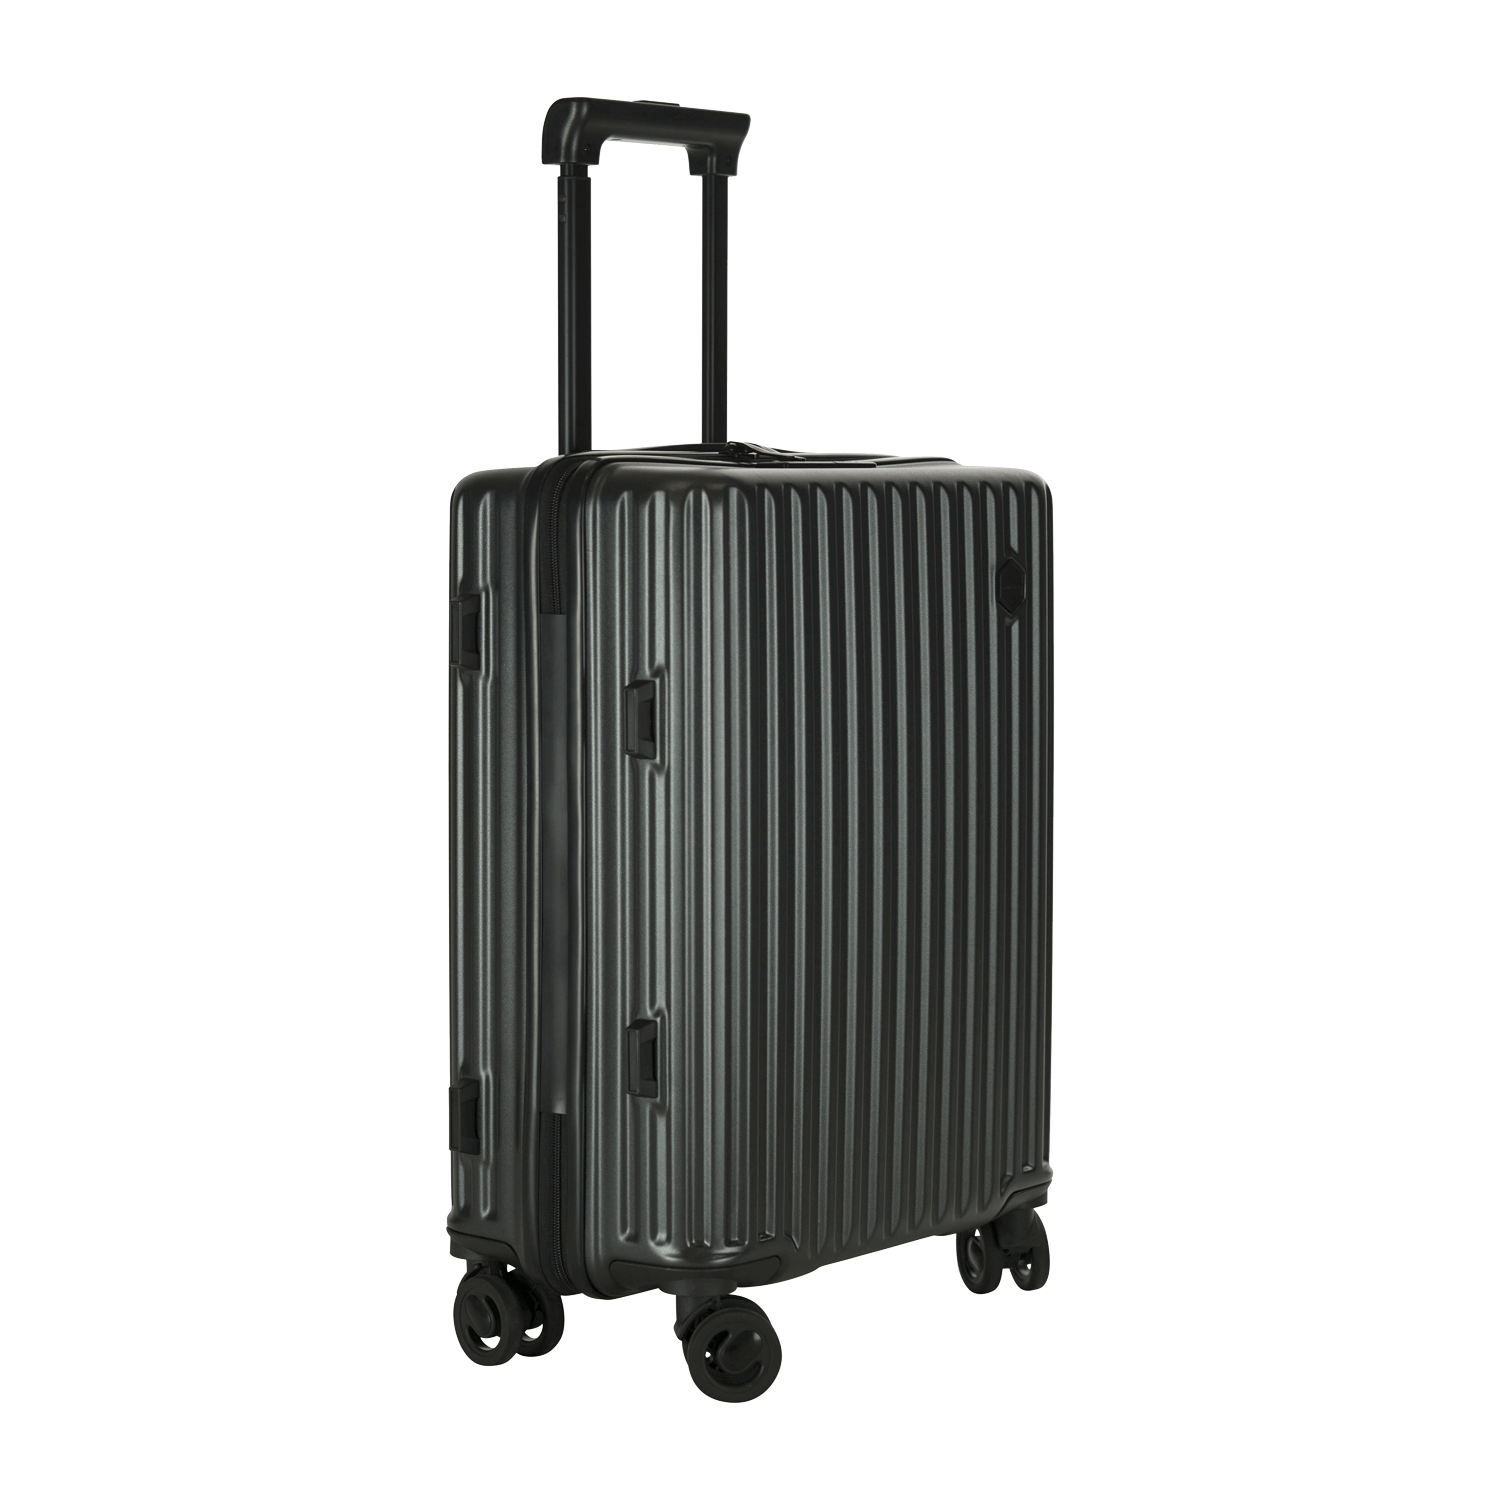 Alpha Luggage with FingerPrint Scanner.